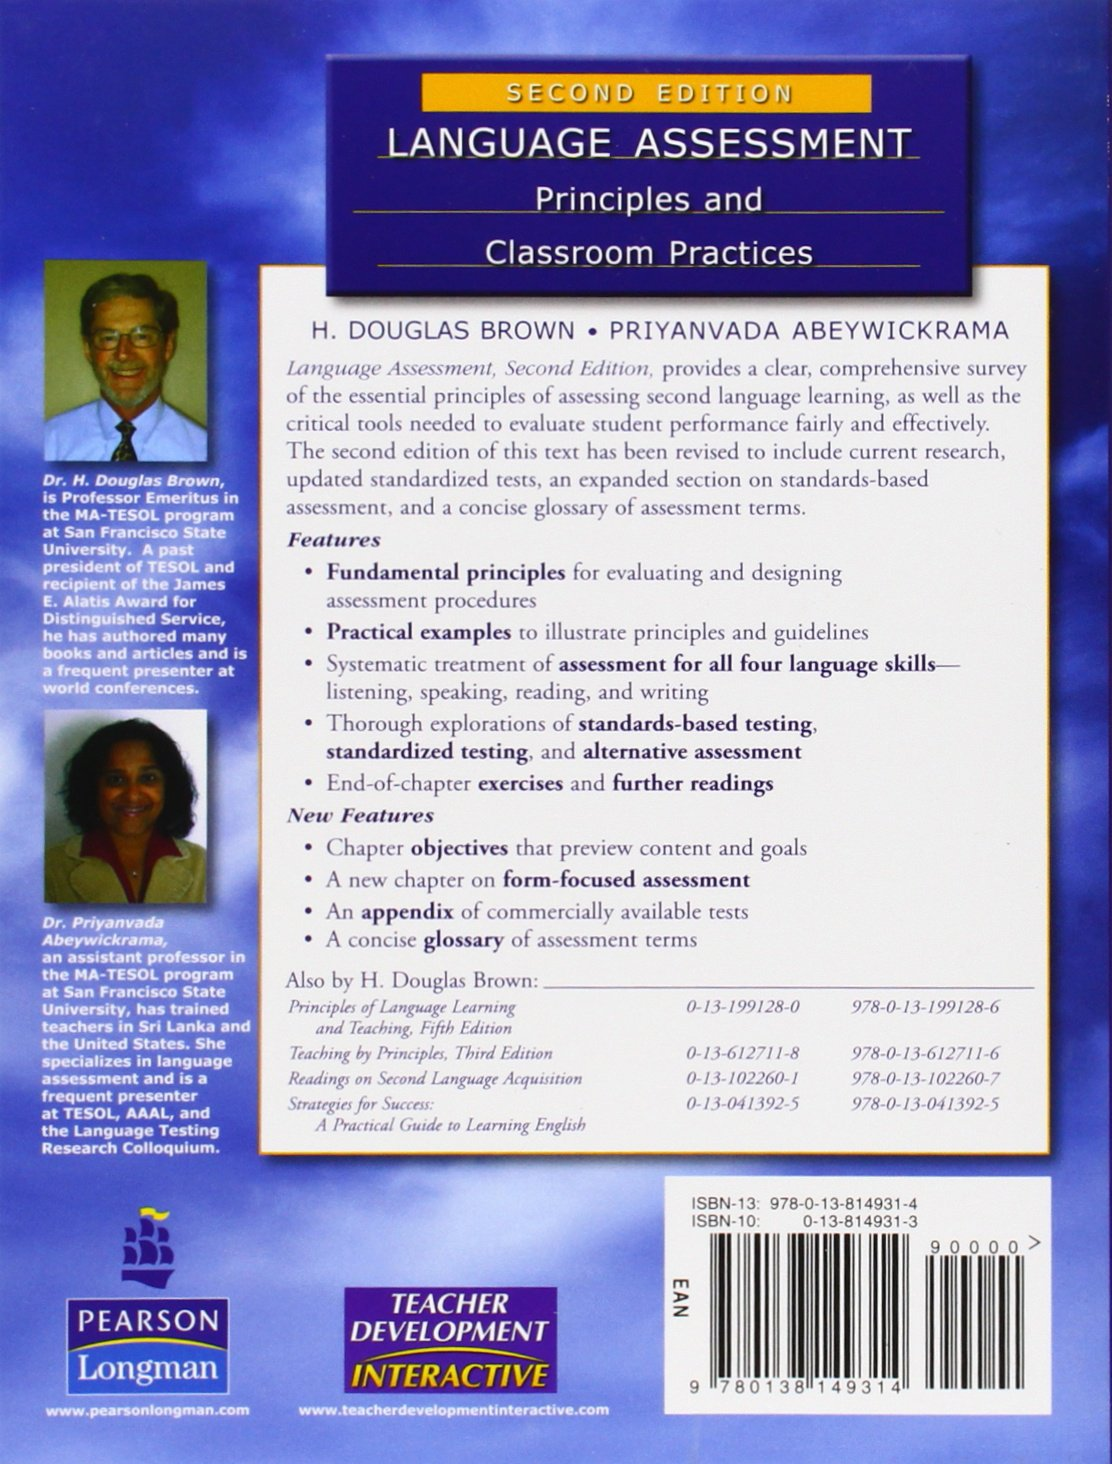 Language assessment principles and classroom practices livros na language assessment principles and classroom practices livros na amazon brasil 9780138149314 fandeluxe Gallery